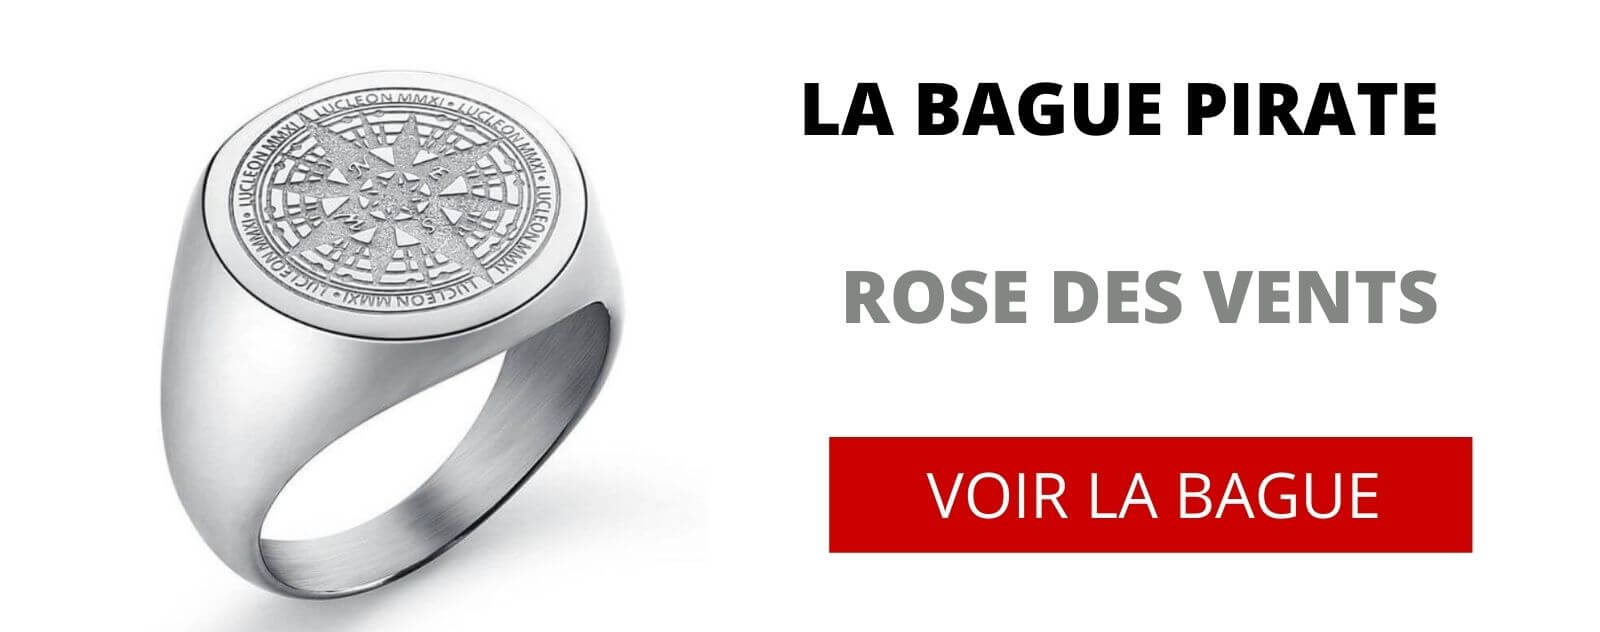 bague-pirate-rose-des-vents